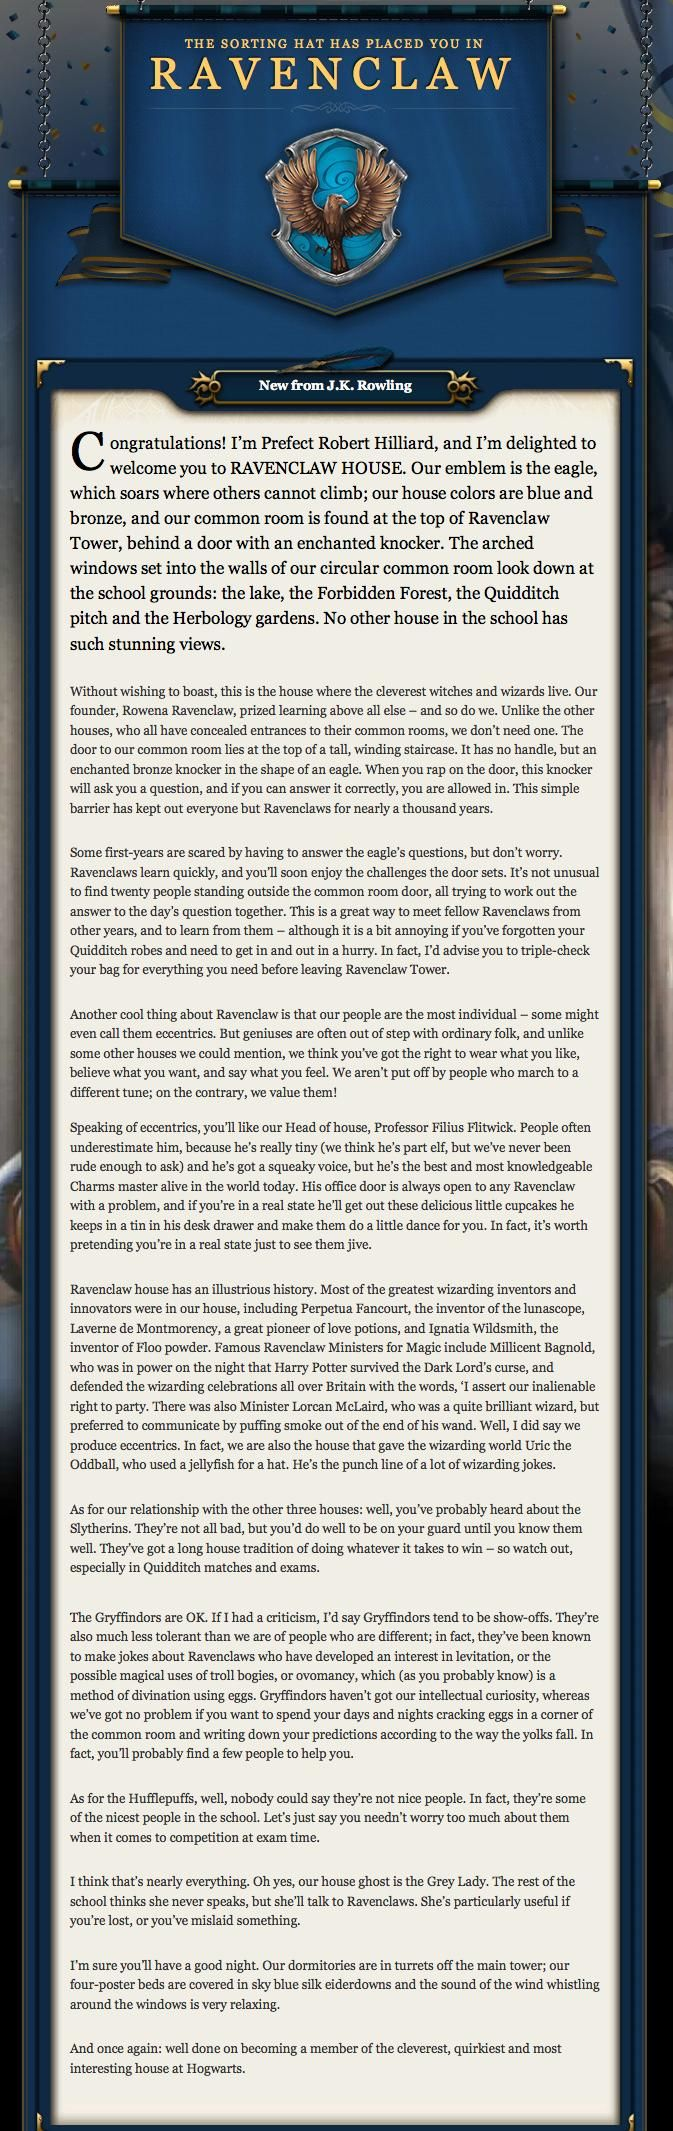 Okay. I wasn't sorted into Ravenclaw on Pottermore, but it is still my favorite house. I love Ravenclaw!